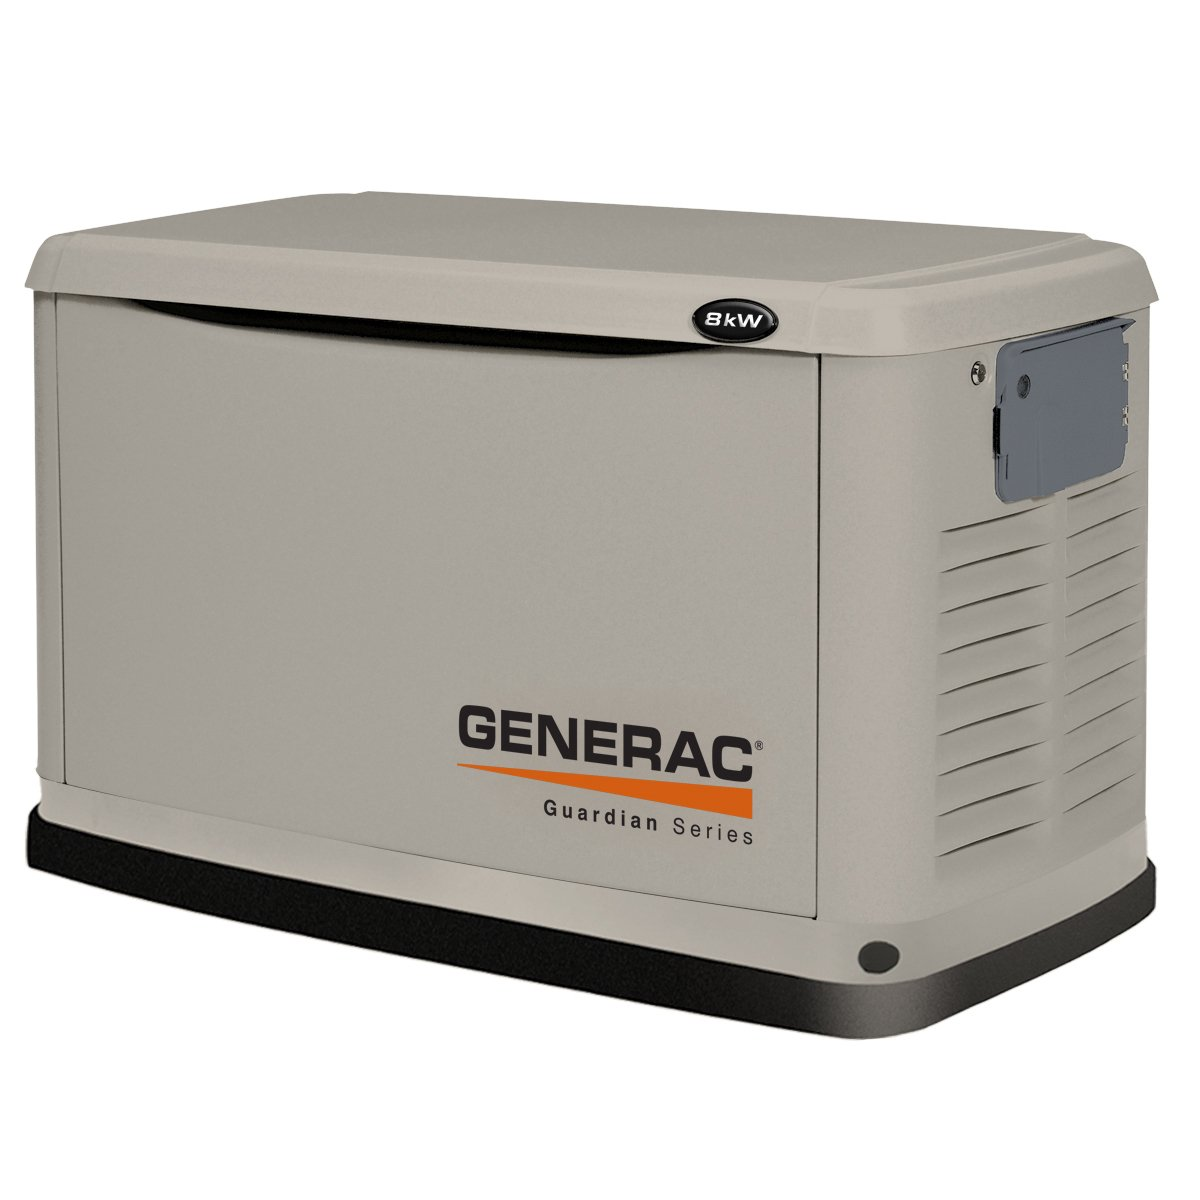 Amazon.com : Generac 6552 Guardian Series, 22kW Air-Cooled Standby  Generator : Garden & Outdoor